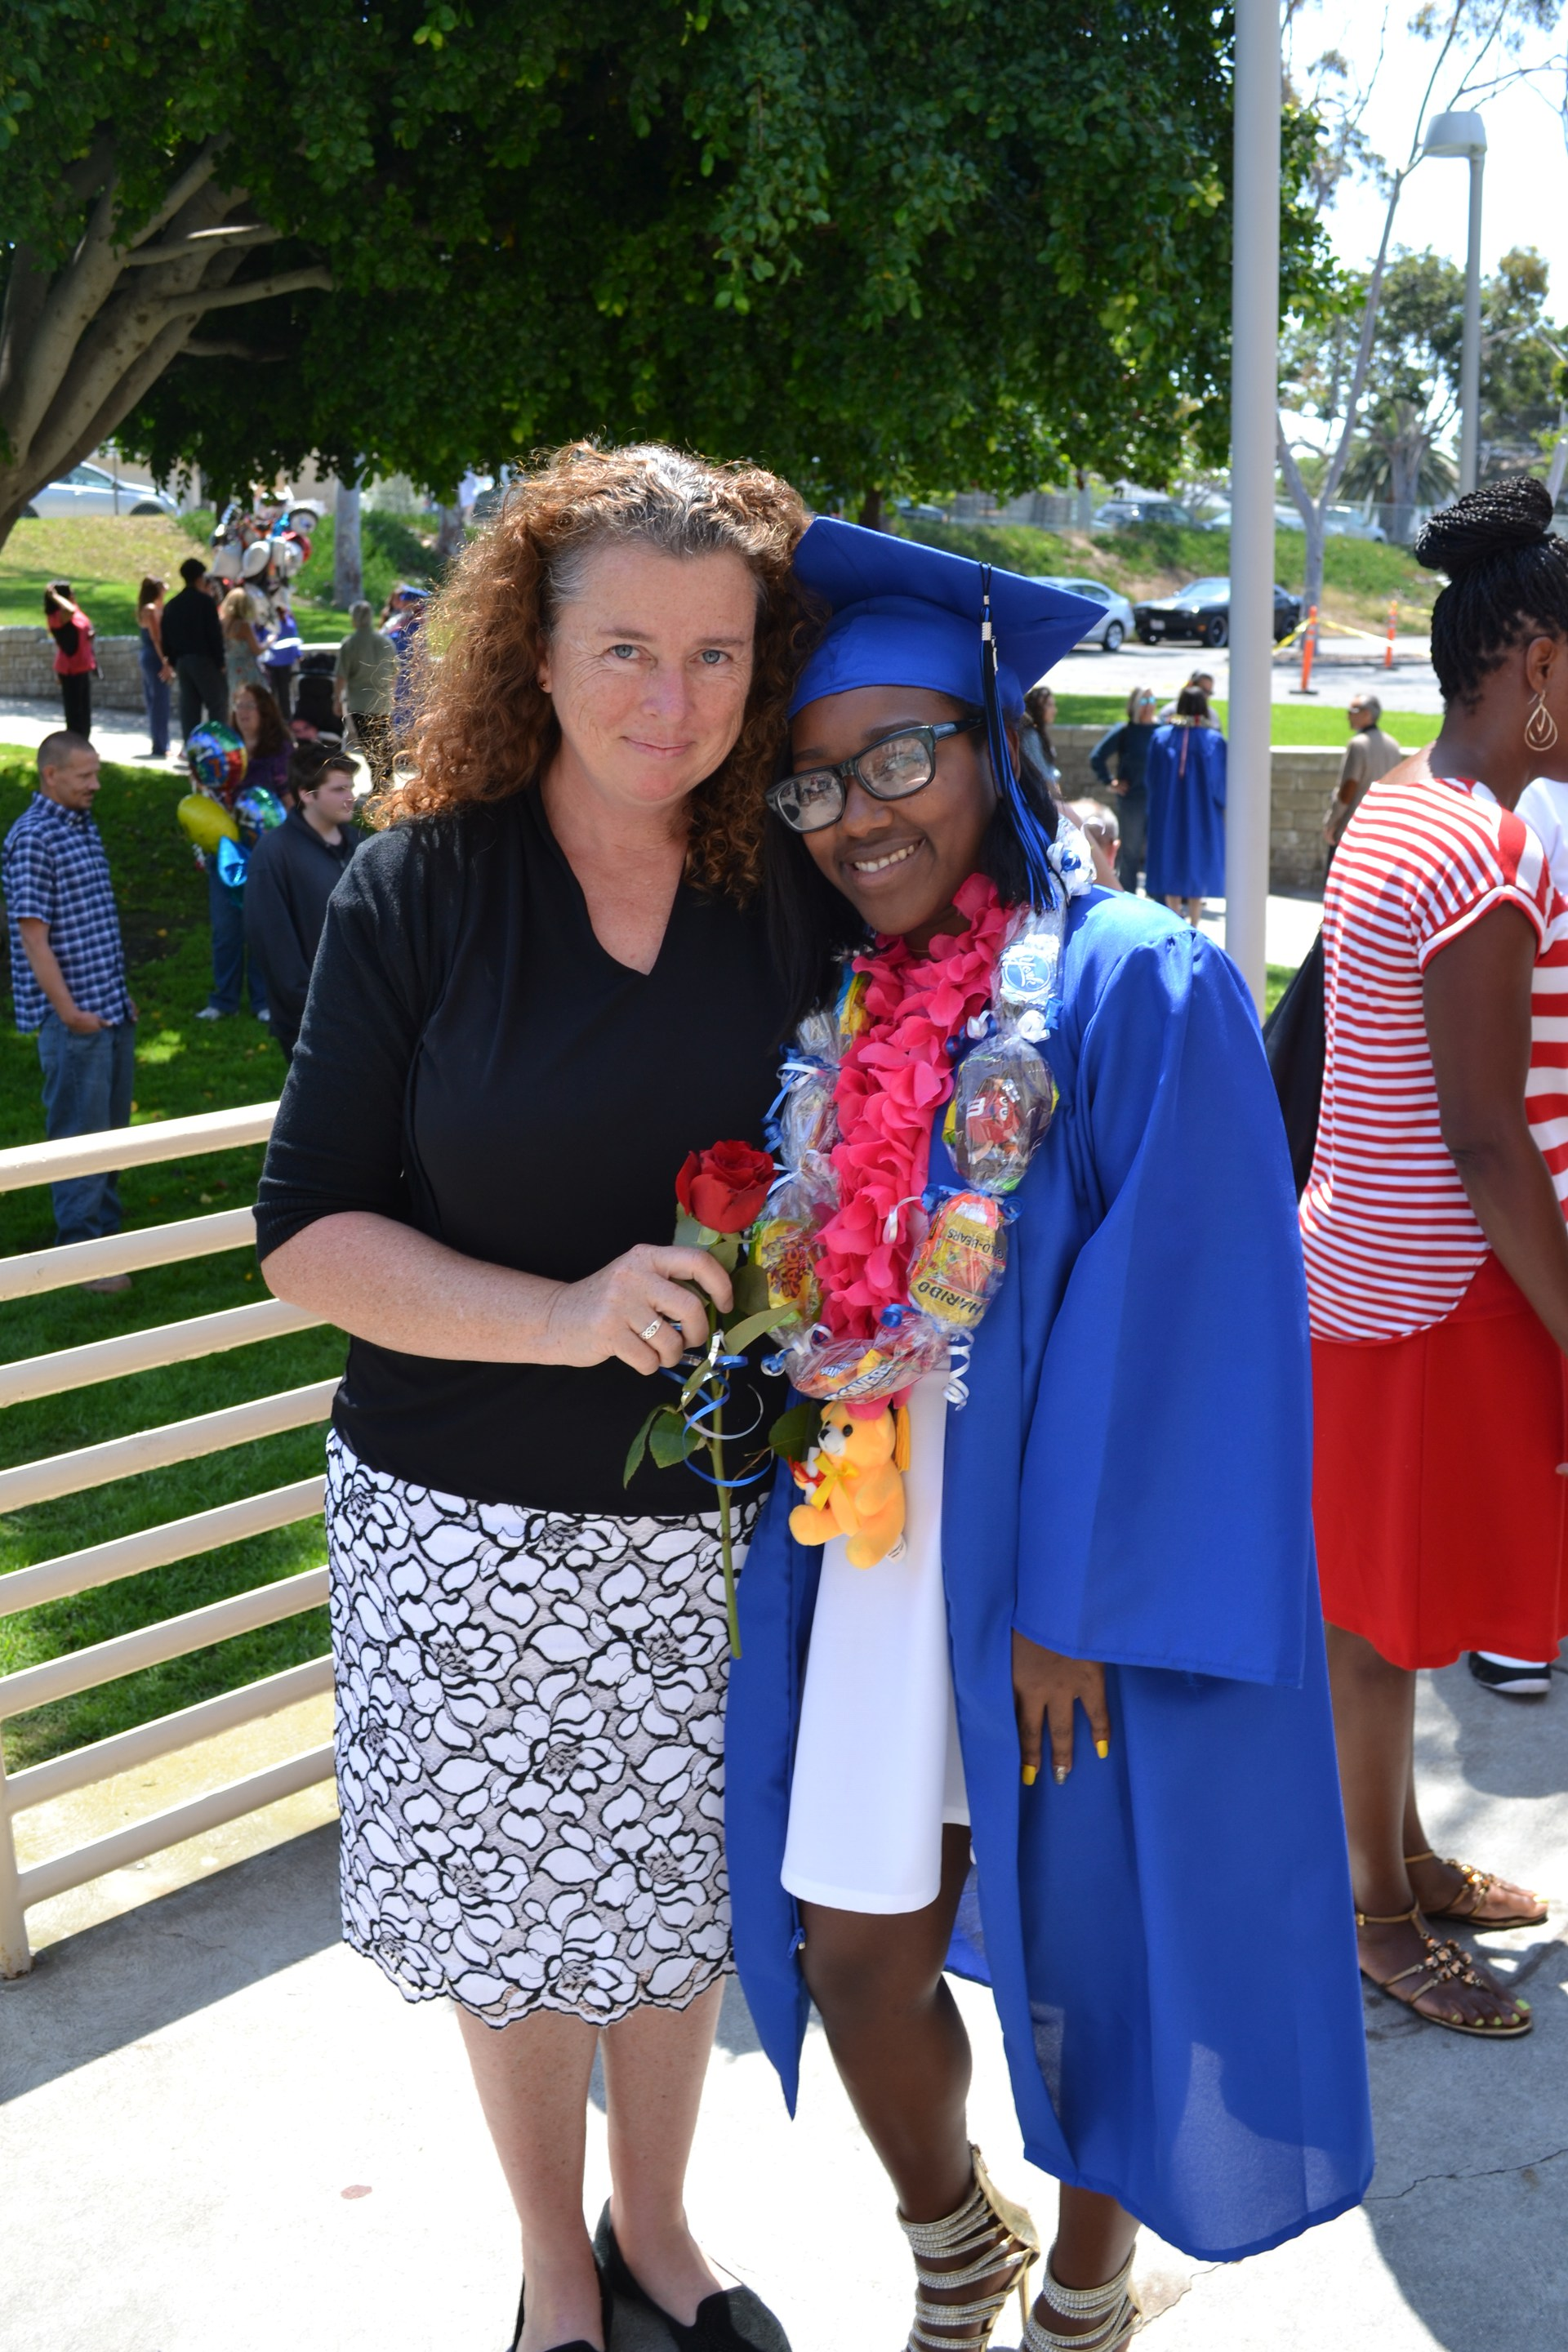 Allison Parsons at Graduation with student